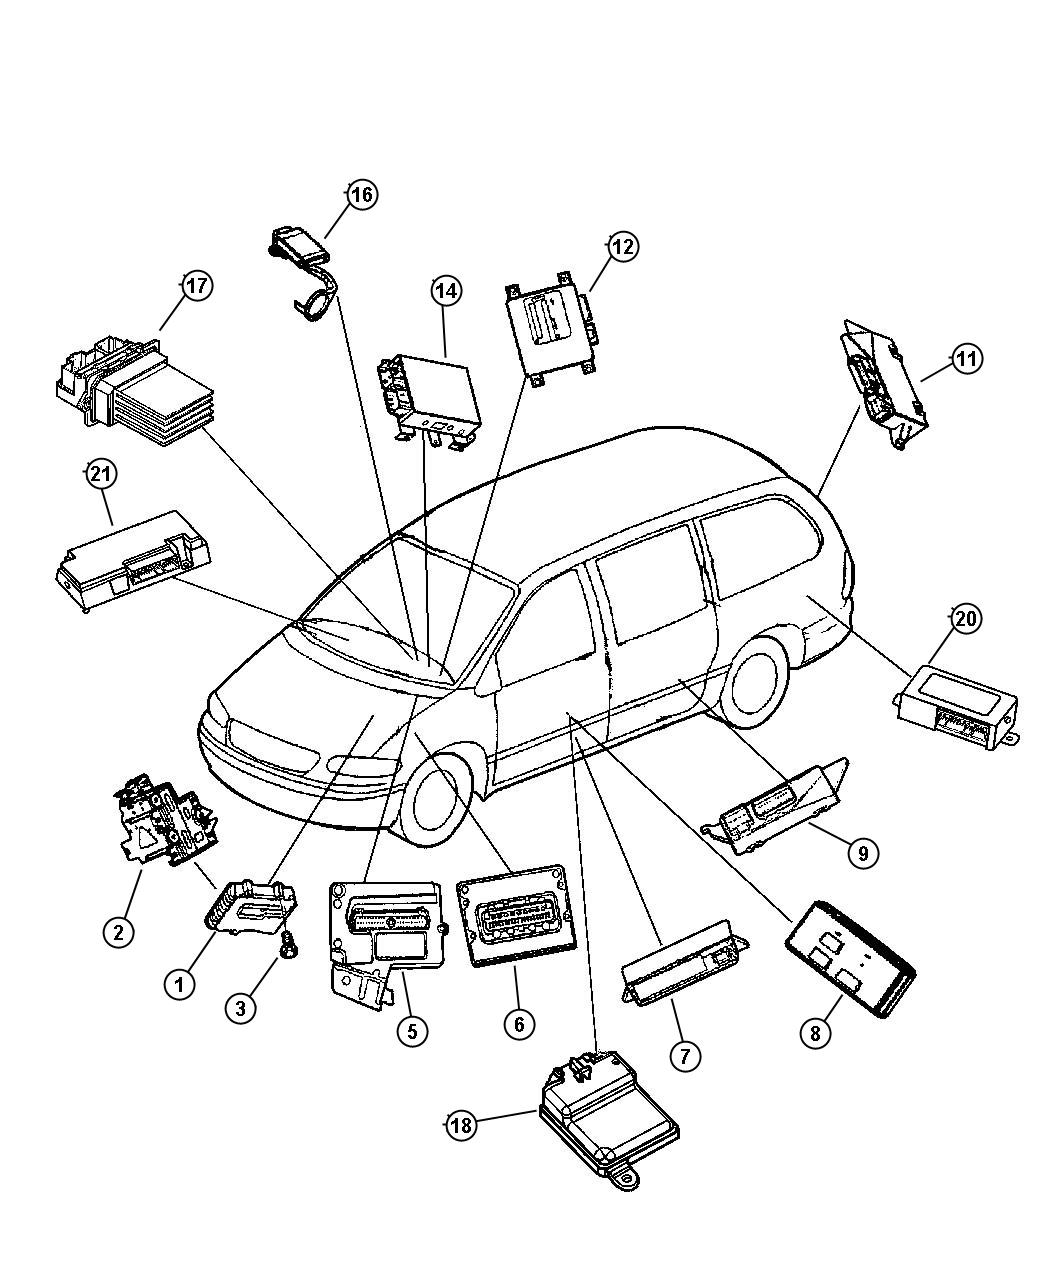 2005 Dodge Grand Caravan Wiring Harness Library Diagram For 2003 Suspension